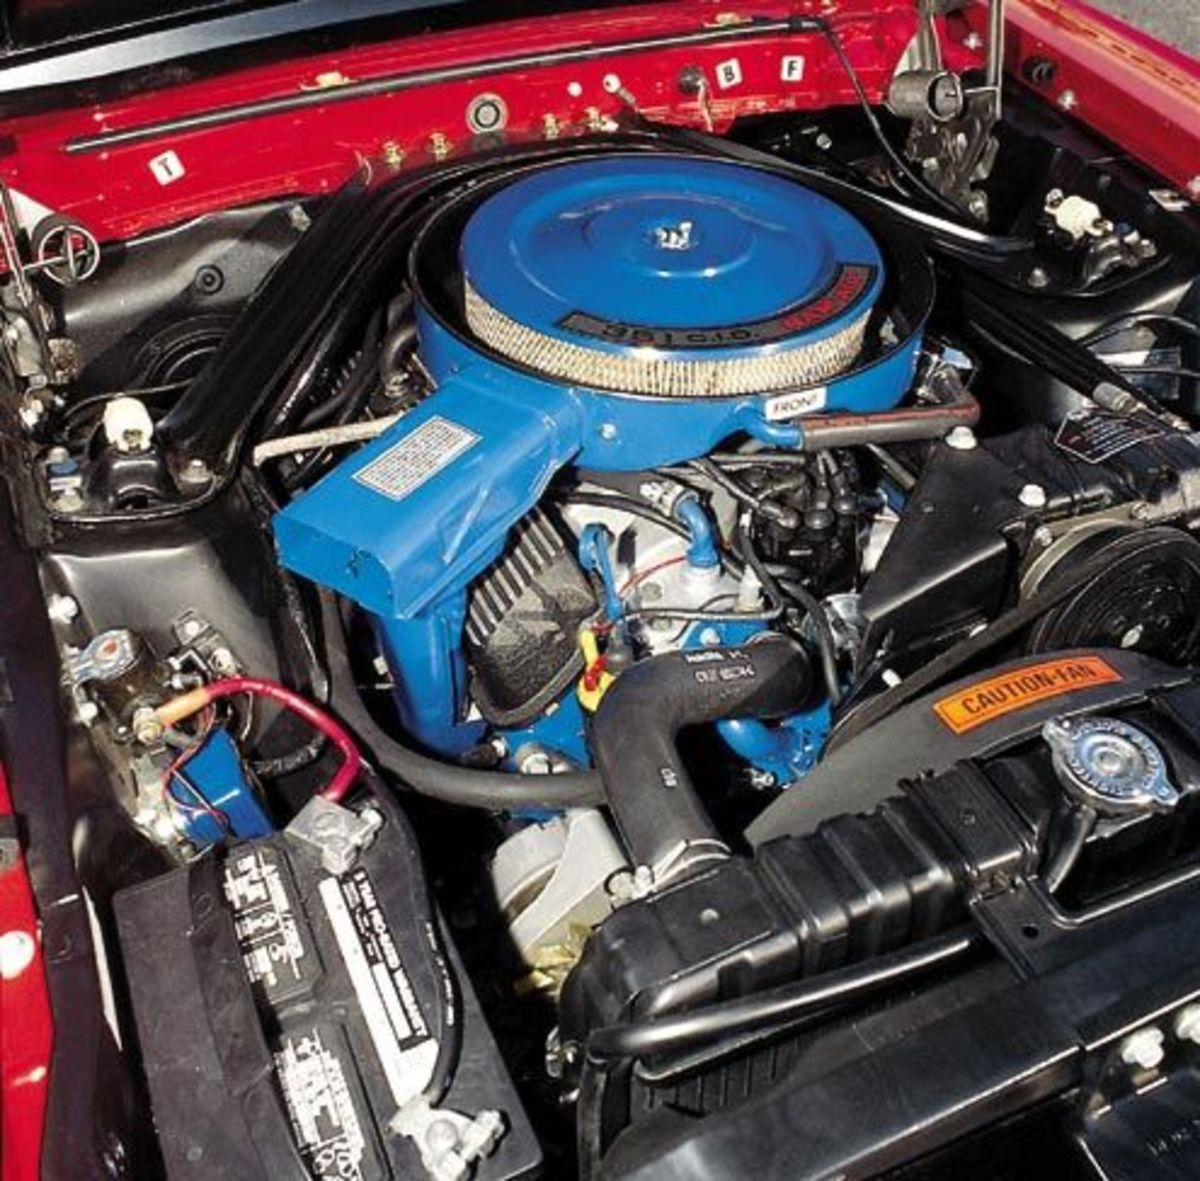 1969 SHELBY MUSTANG GT 350 ENGINE